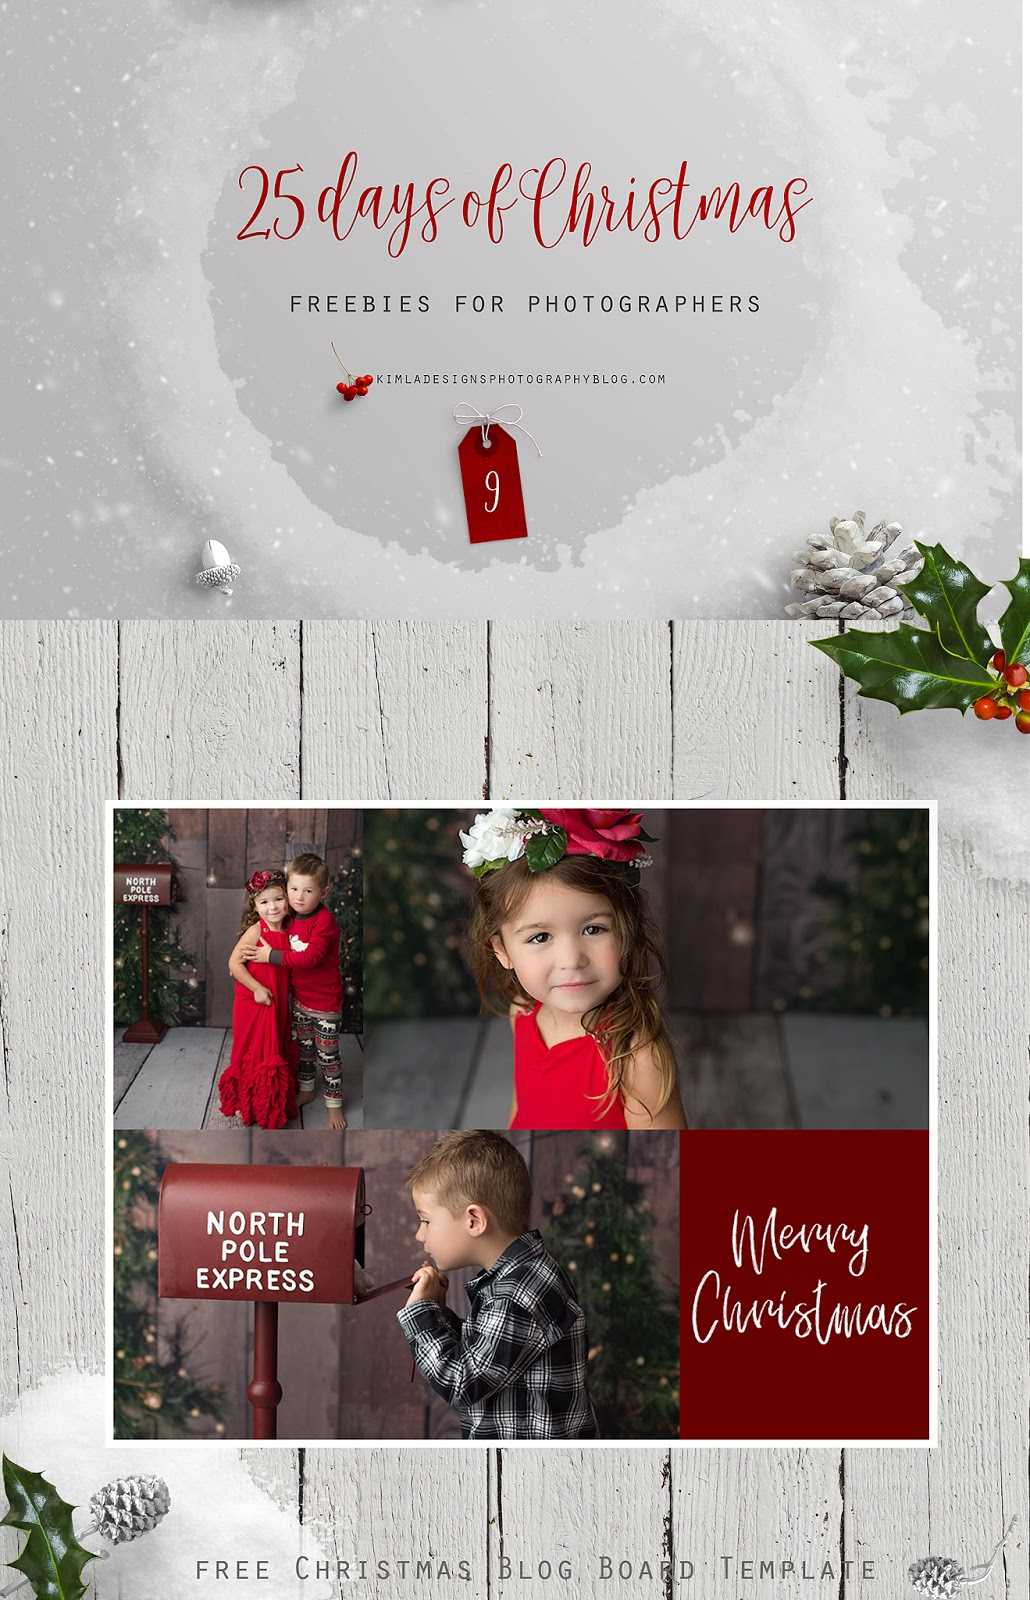 Day 9 of 25 Days of Christmas Freebies for Photographers